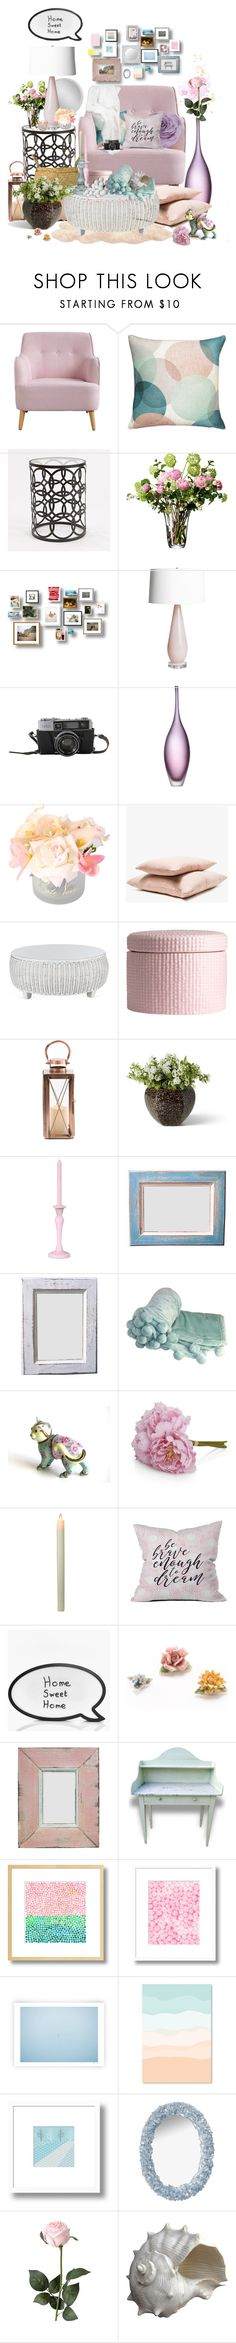 """""""Traveler Comfy"""" by jcmp ❤ liked on Polyvore featuring interior, interiors, interior design, home, home decor, interior decorating, InnerSpace Luxury Products, LSA International, Emporium Home and Hawkins"""